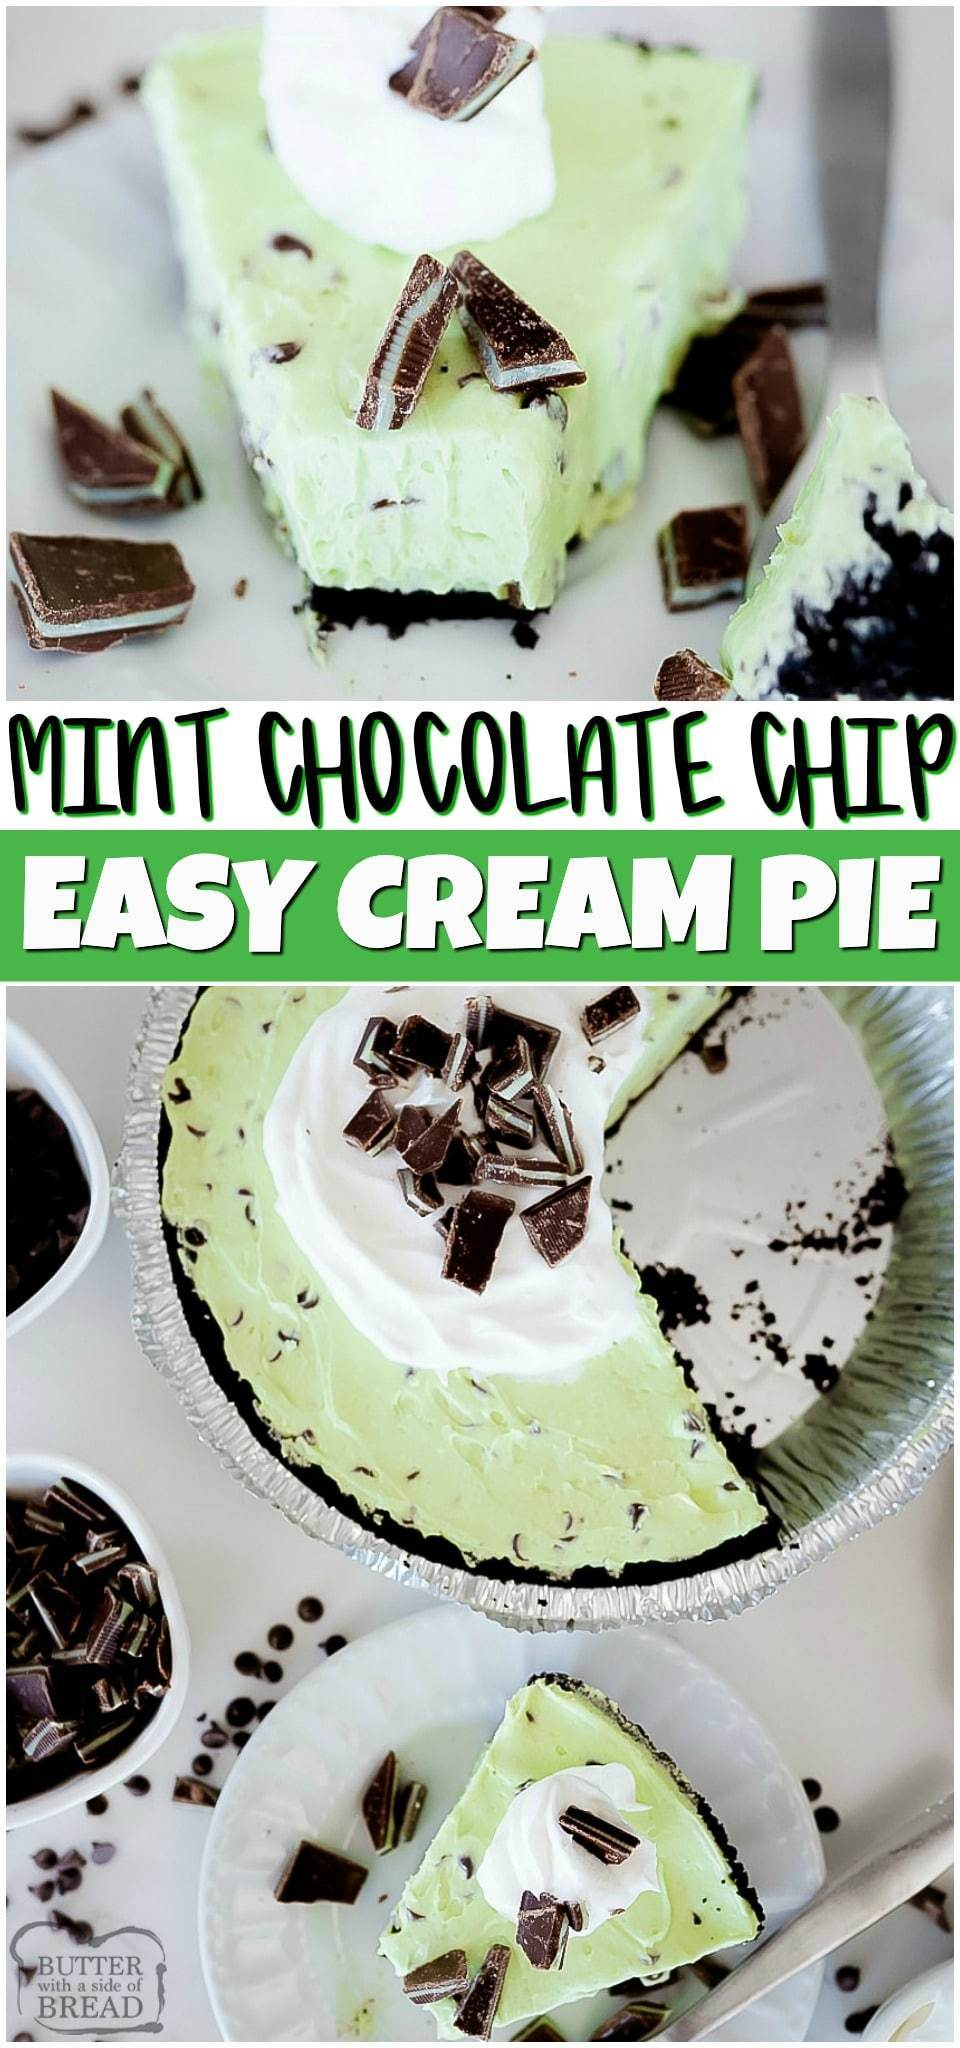 Mint Chocolate Chip Cream Pie is a creamy mint pie loaded with chocolate chips! This easy pie recipe has smooth mint cream filling mixed with chocolate chips & Andes mints all in an Oreo pie crust. Chocolate Mint lovers rejoice!